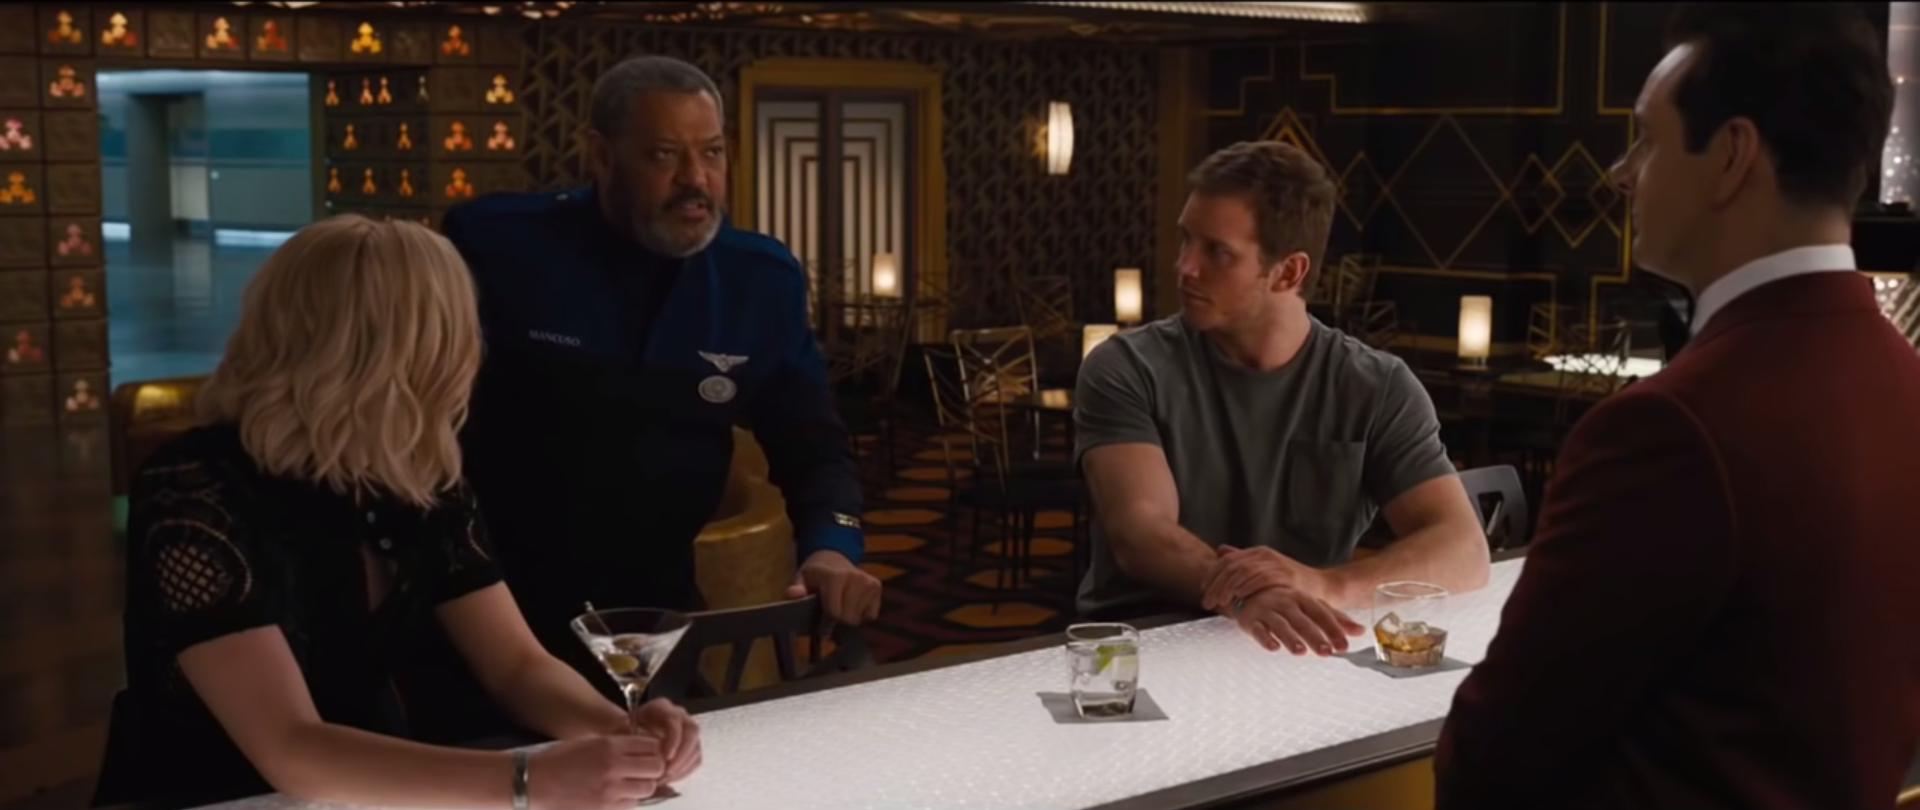 Drinking at the Avalon bar in Passengers